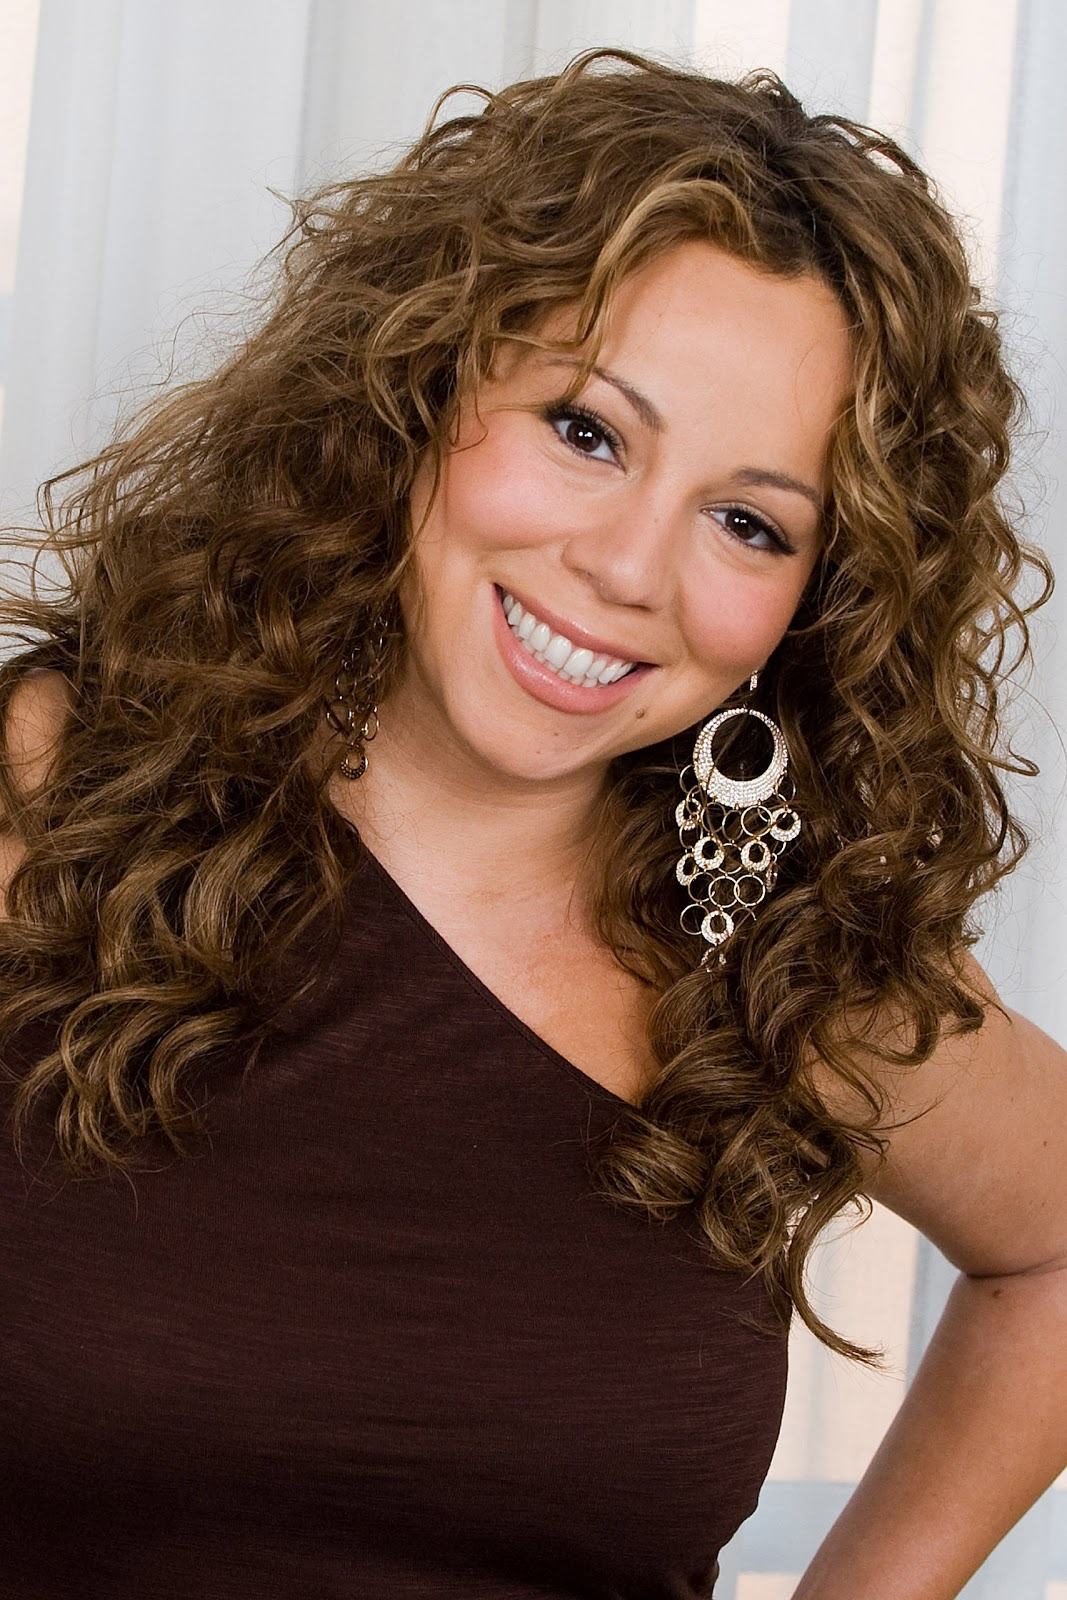 http://4.bp.blogspot.com/-48-qFk_09xY/UBbtsuDlV9I/AAAAAAAAFJk/gVQLFBKktgk/s1600/Mariah-Carey-hairstyles-celebrity-actress-singer-wallpaper-songwriter-carey-mariah+(1).jpg